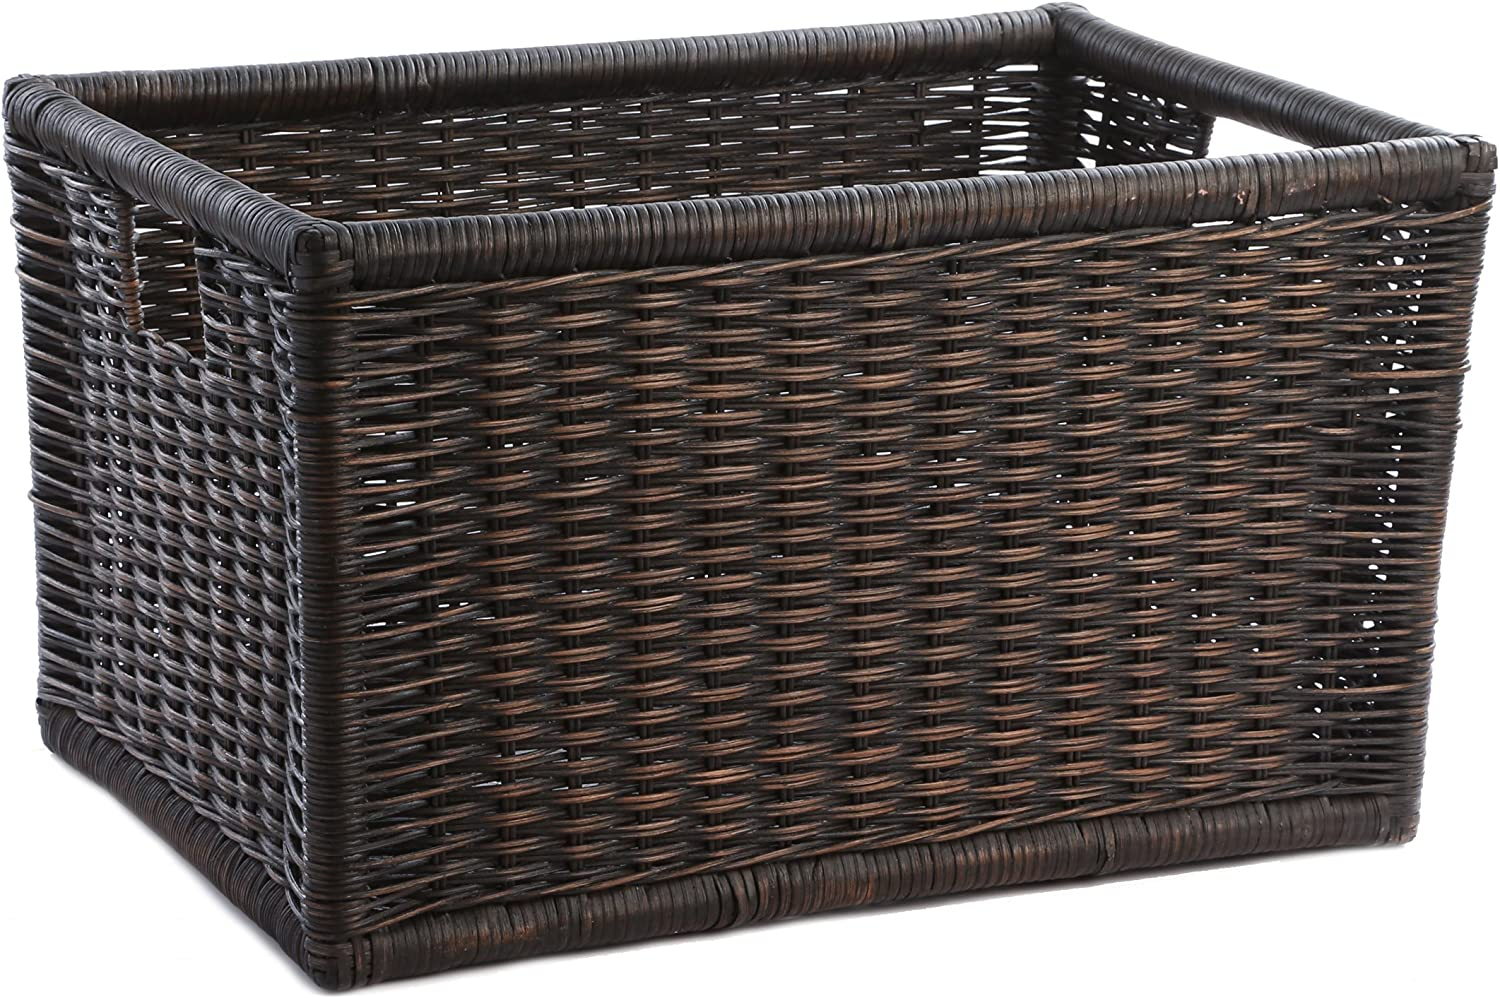 Amazon Com The Basket Lady Wicker Kitchen Cabinet Basket Or Pantry Basket Small 17 75 In L X 9 25 In W X 9 In H Antique Walnut Brown Home Kitchen